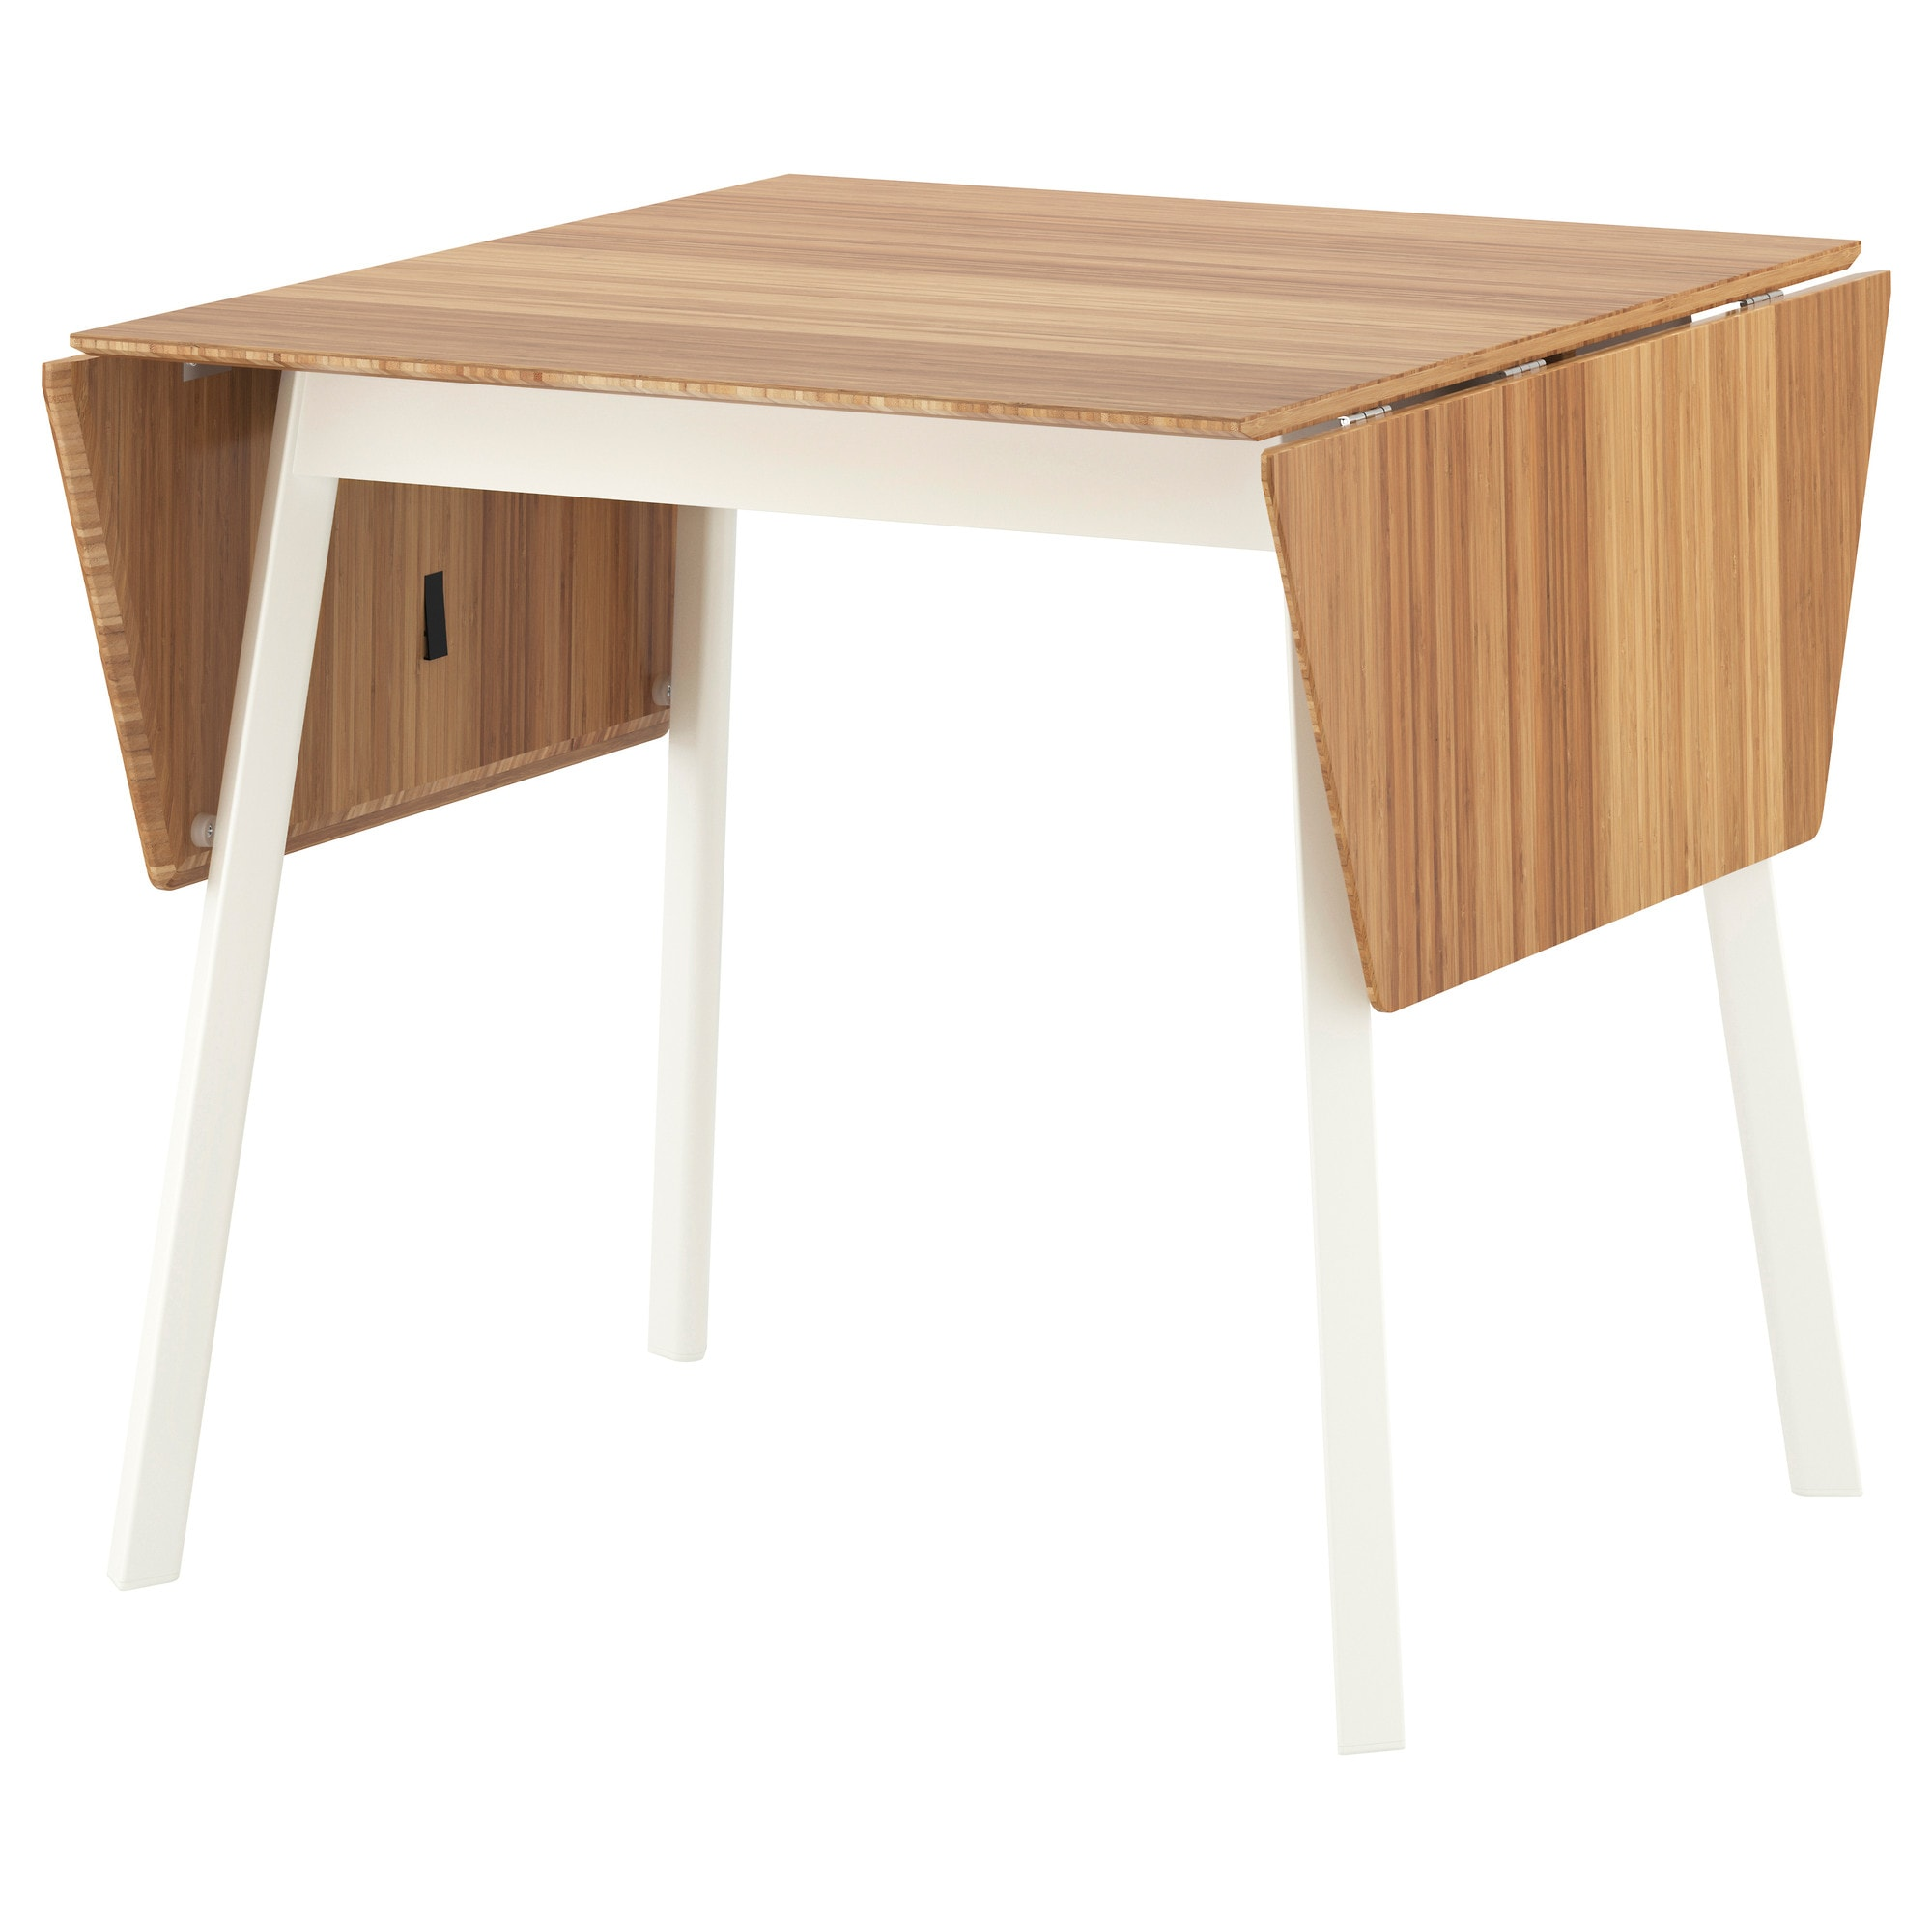 IKEA PS 2012 Drop Leaf Table, Bamboo, White Length: 41 3/